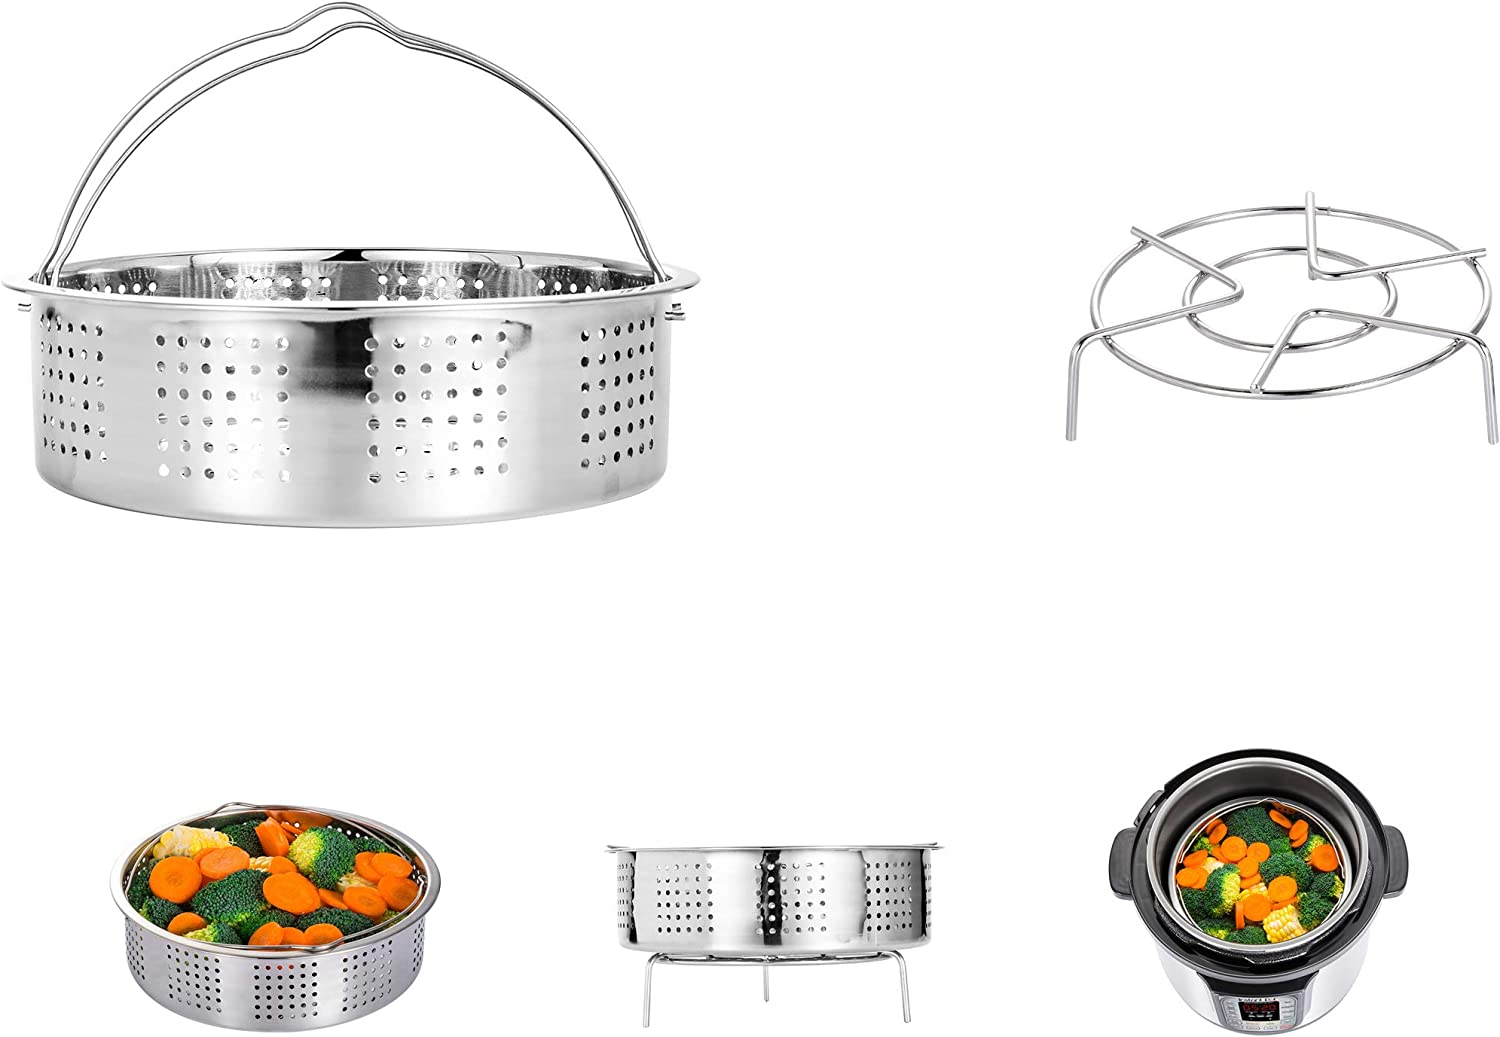 HapWay Stainless Steel Steamer Basket with Steam Rack trivet Compatible 5,6,8 qt Electric Pressure Cooker